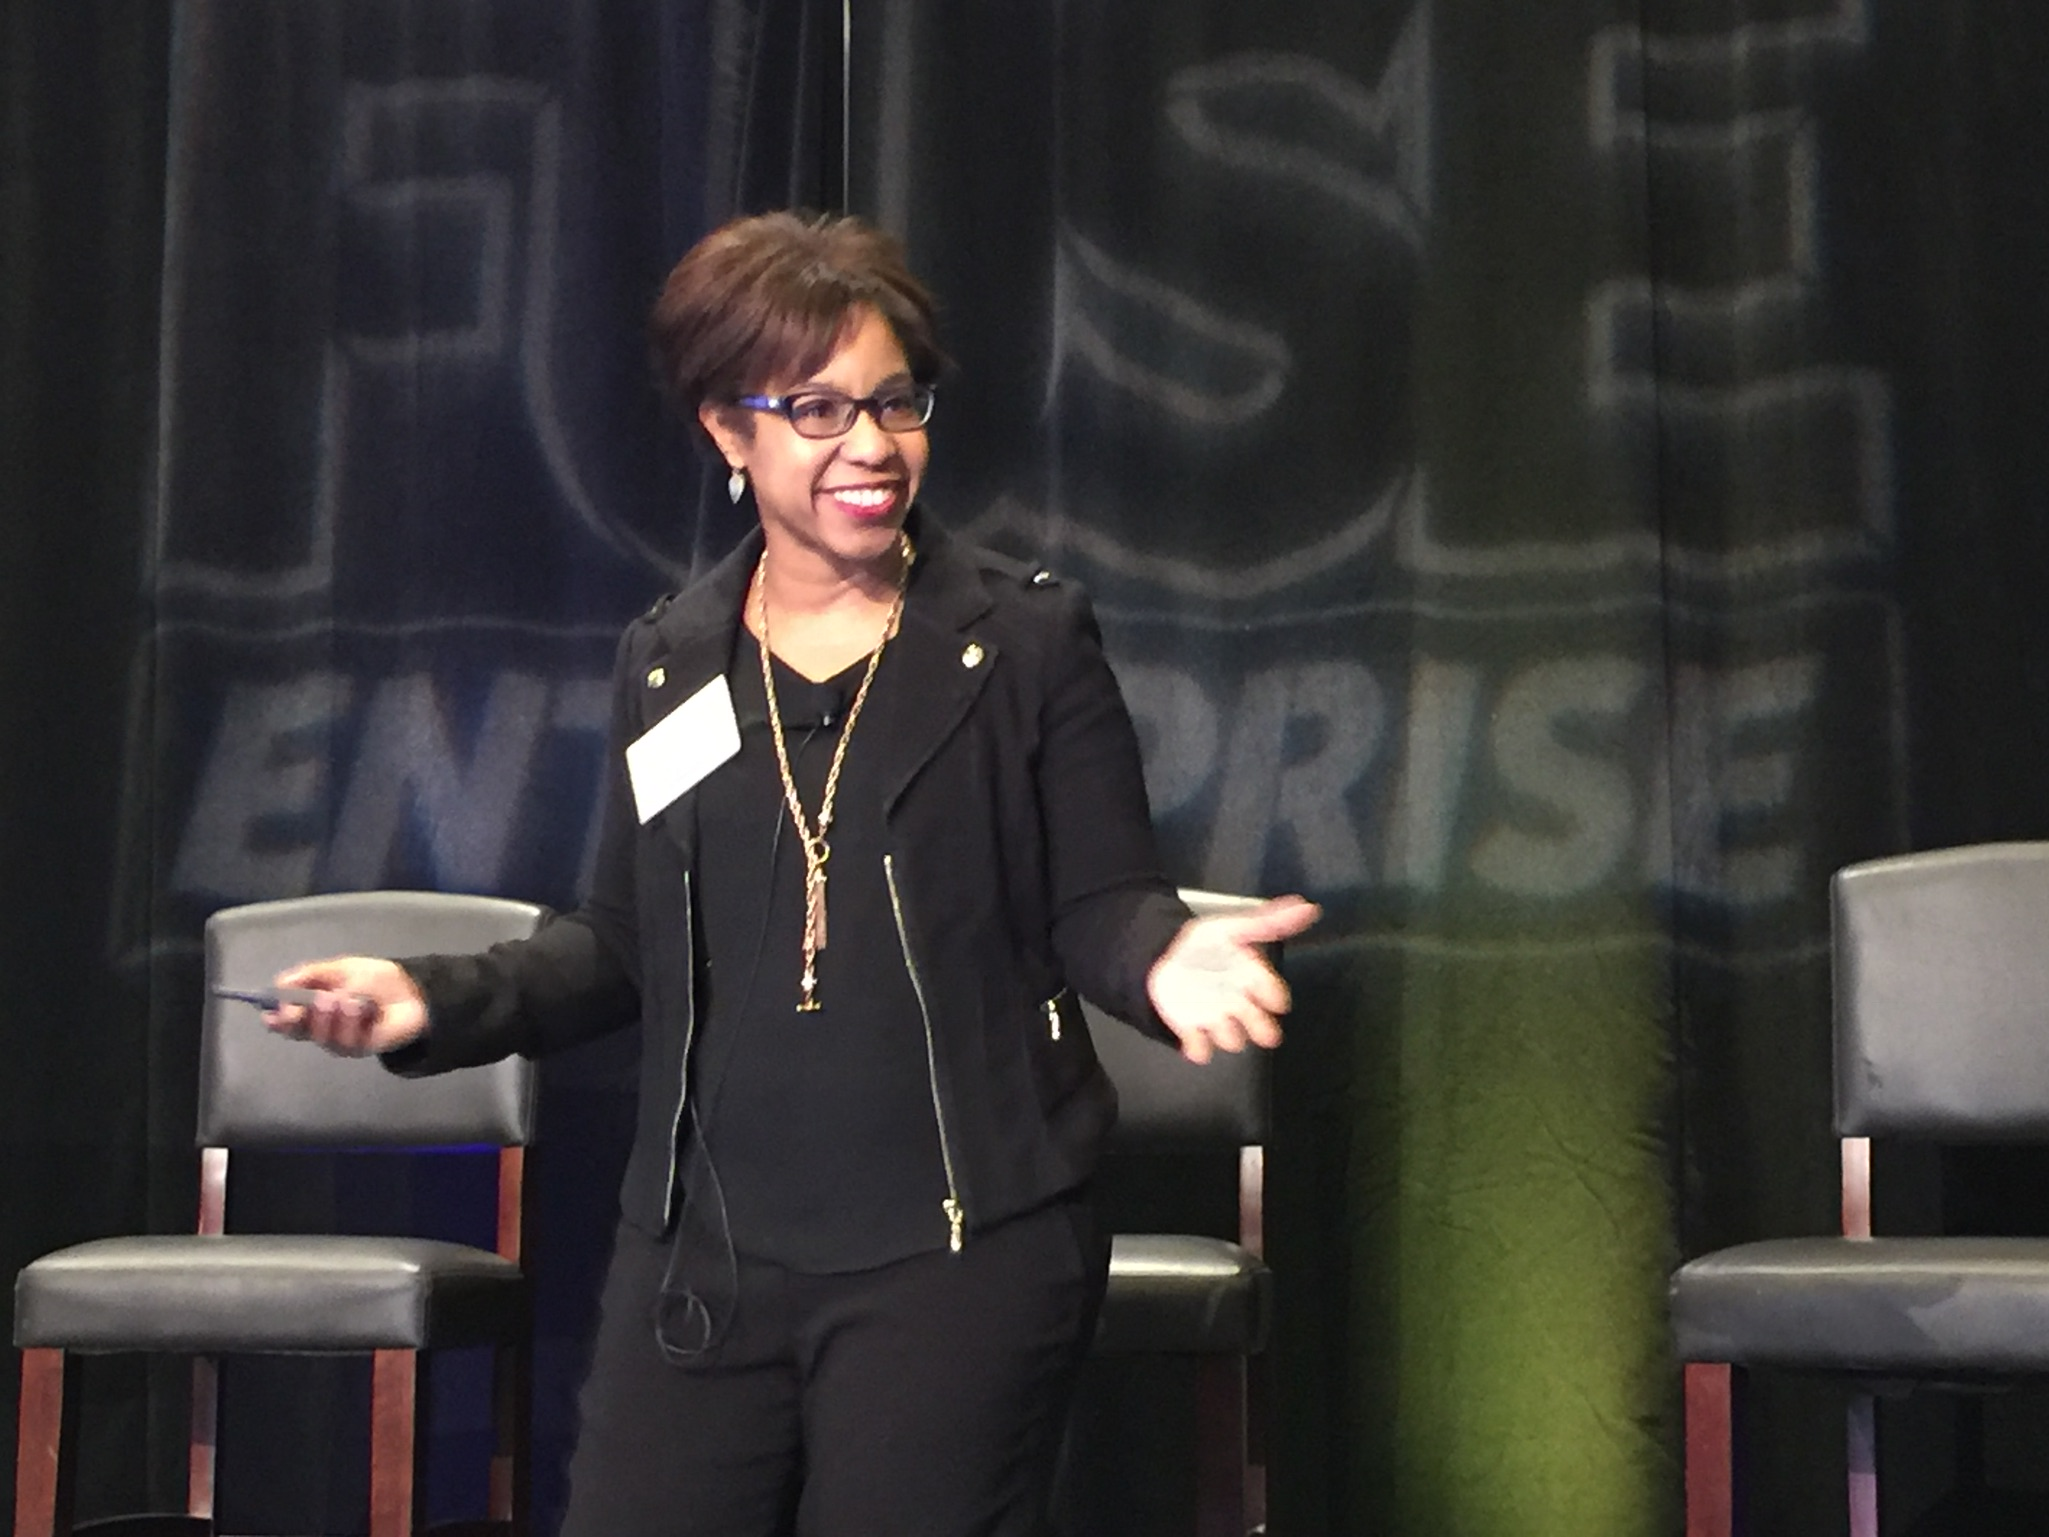 Brande Martin, speaking at digital marketing conference